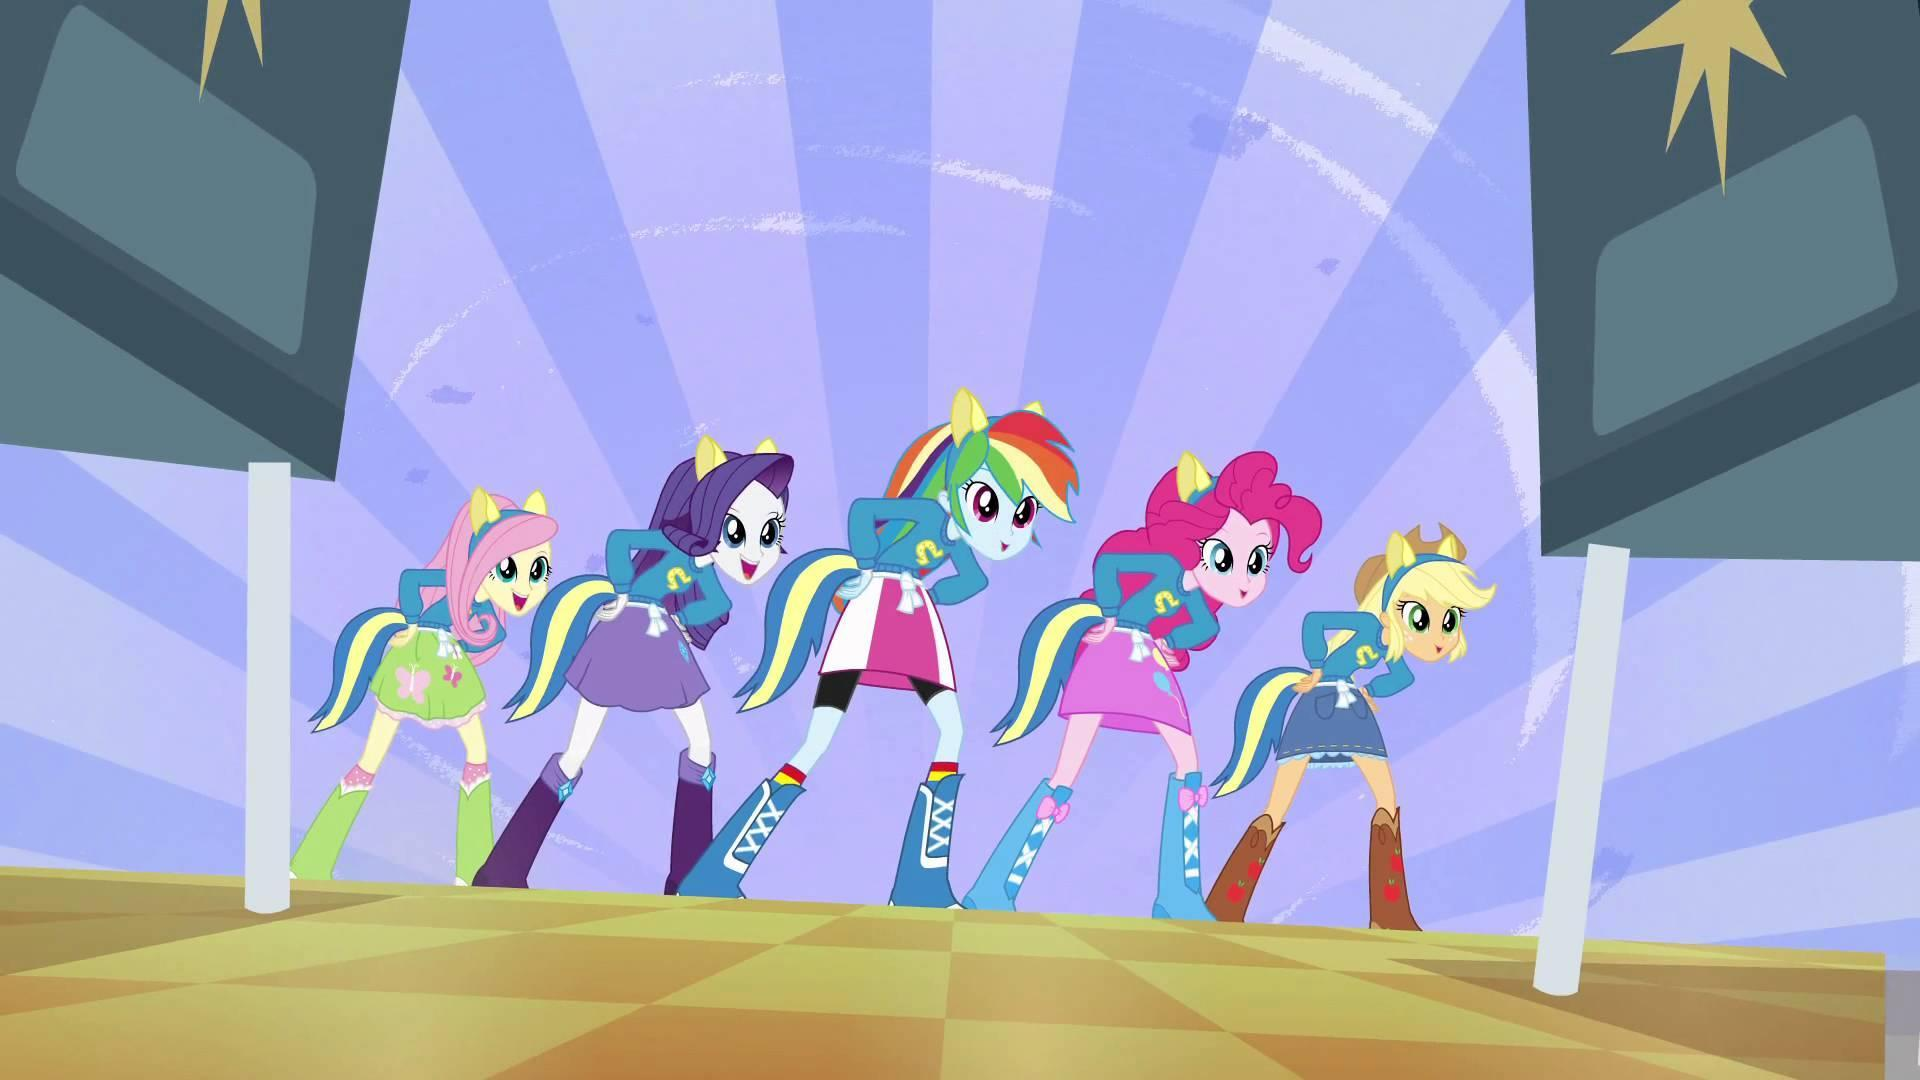 What is the name of The song that the Equestria Girls sing in the Cafeteria?